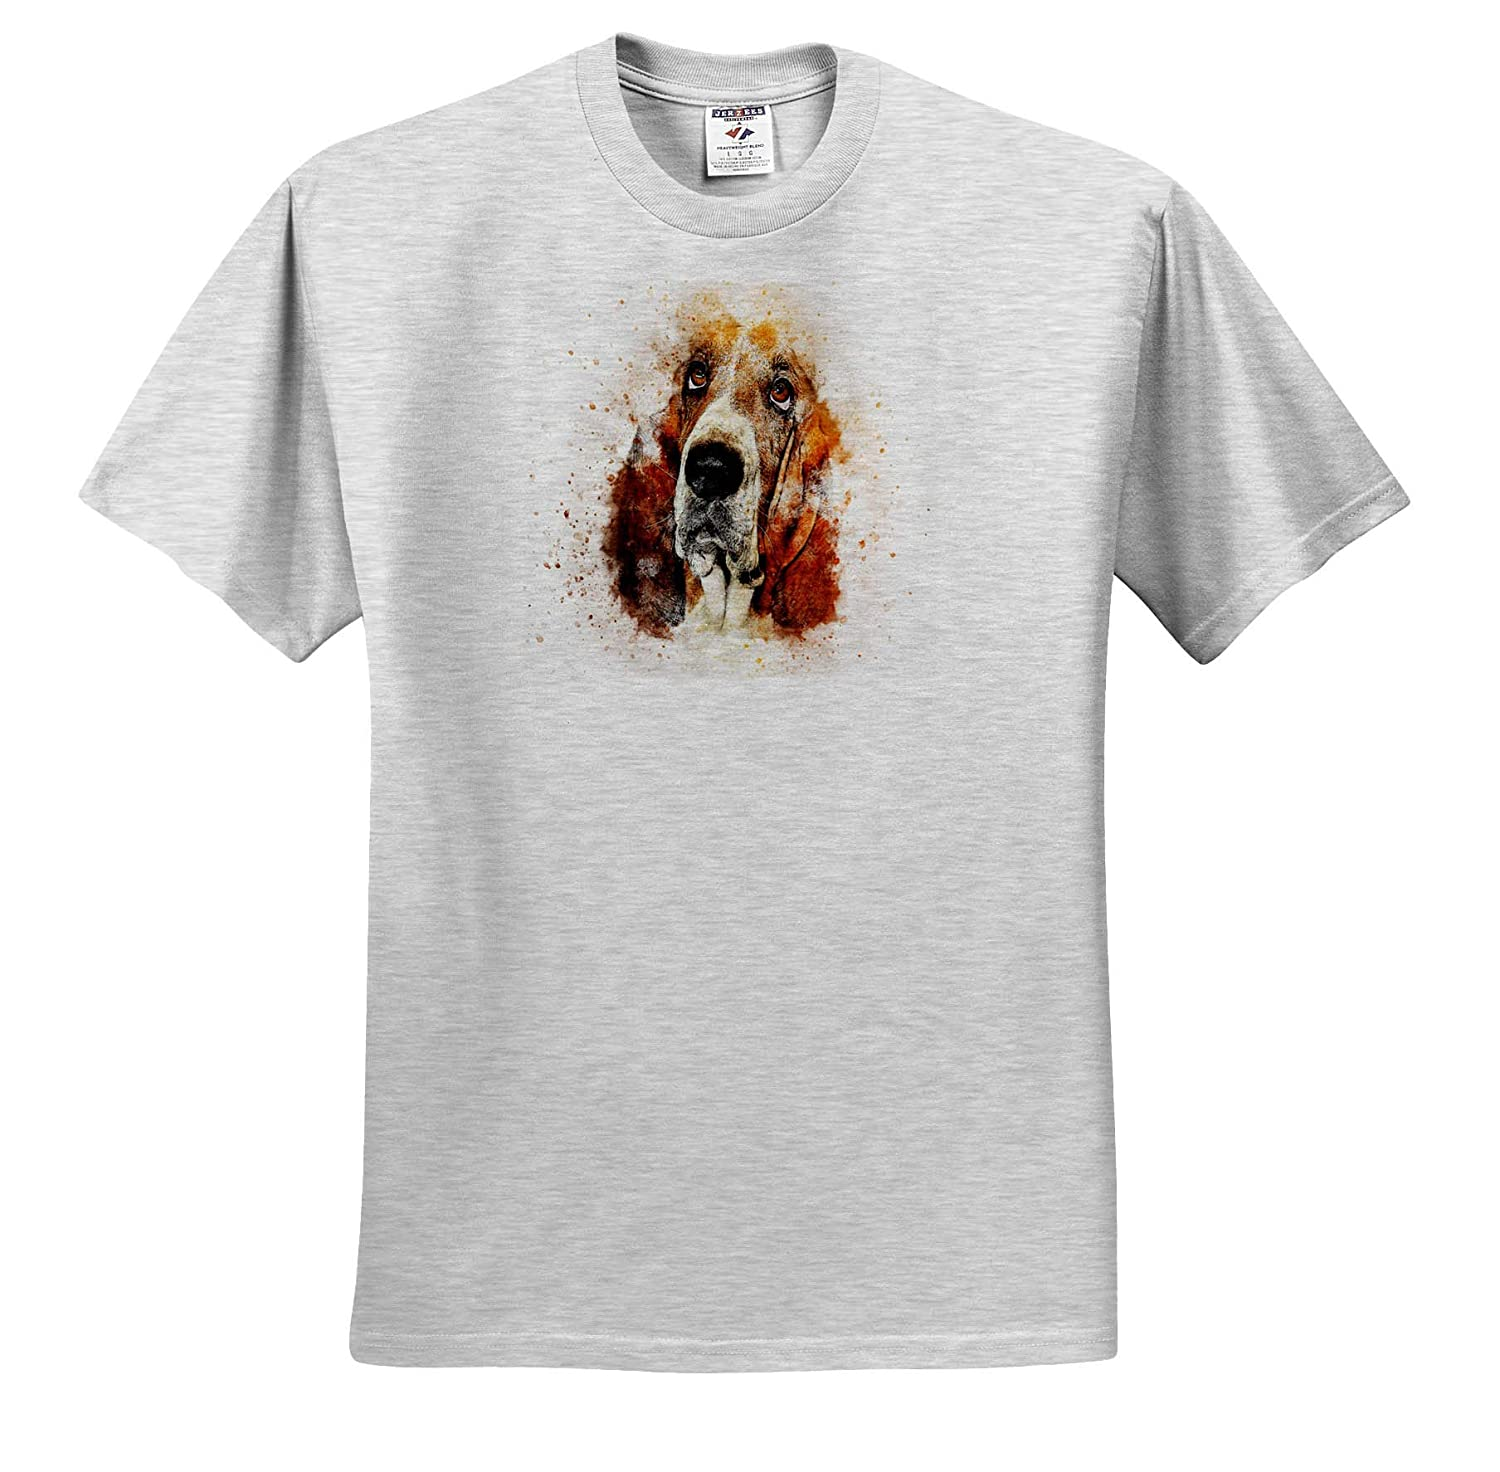 Watercolor Art 3dRose Lens Art by Florene T-Shirts Image of Basset Hound Portrait in Watercolors